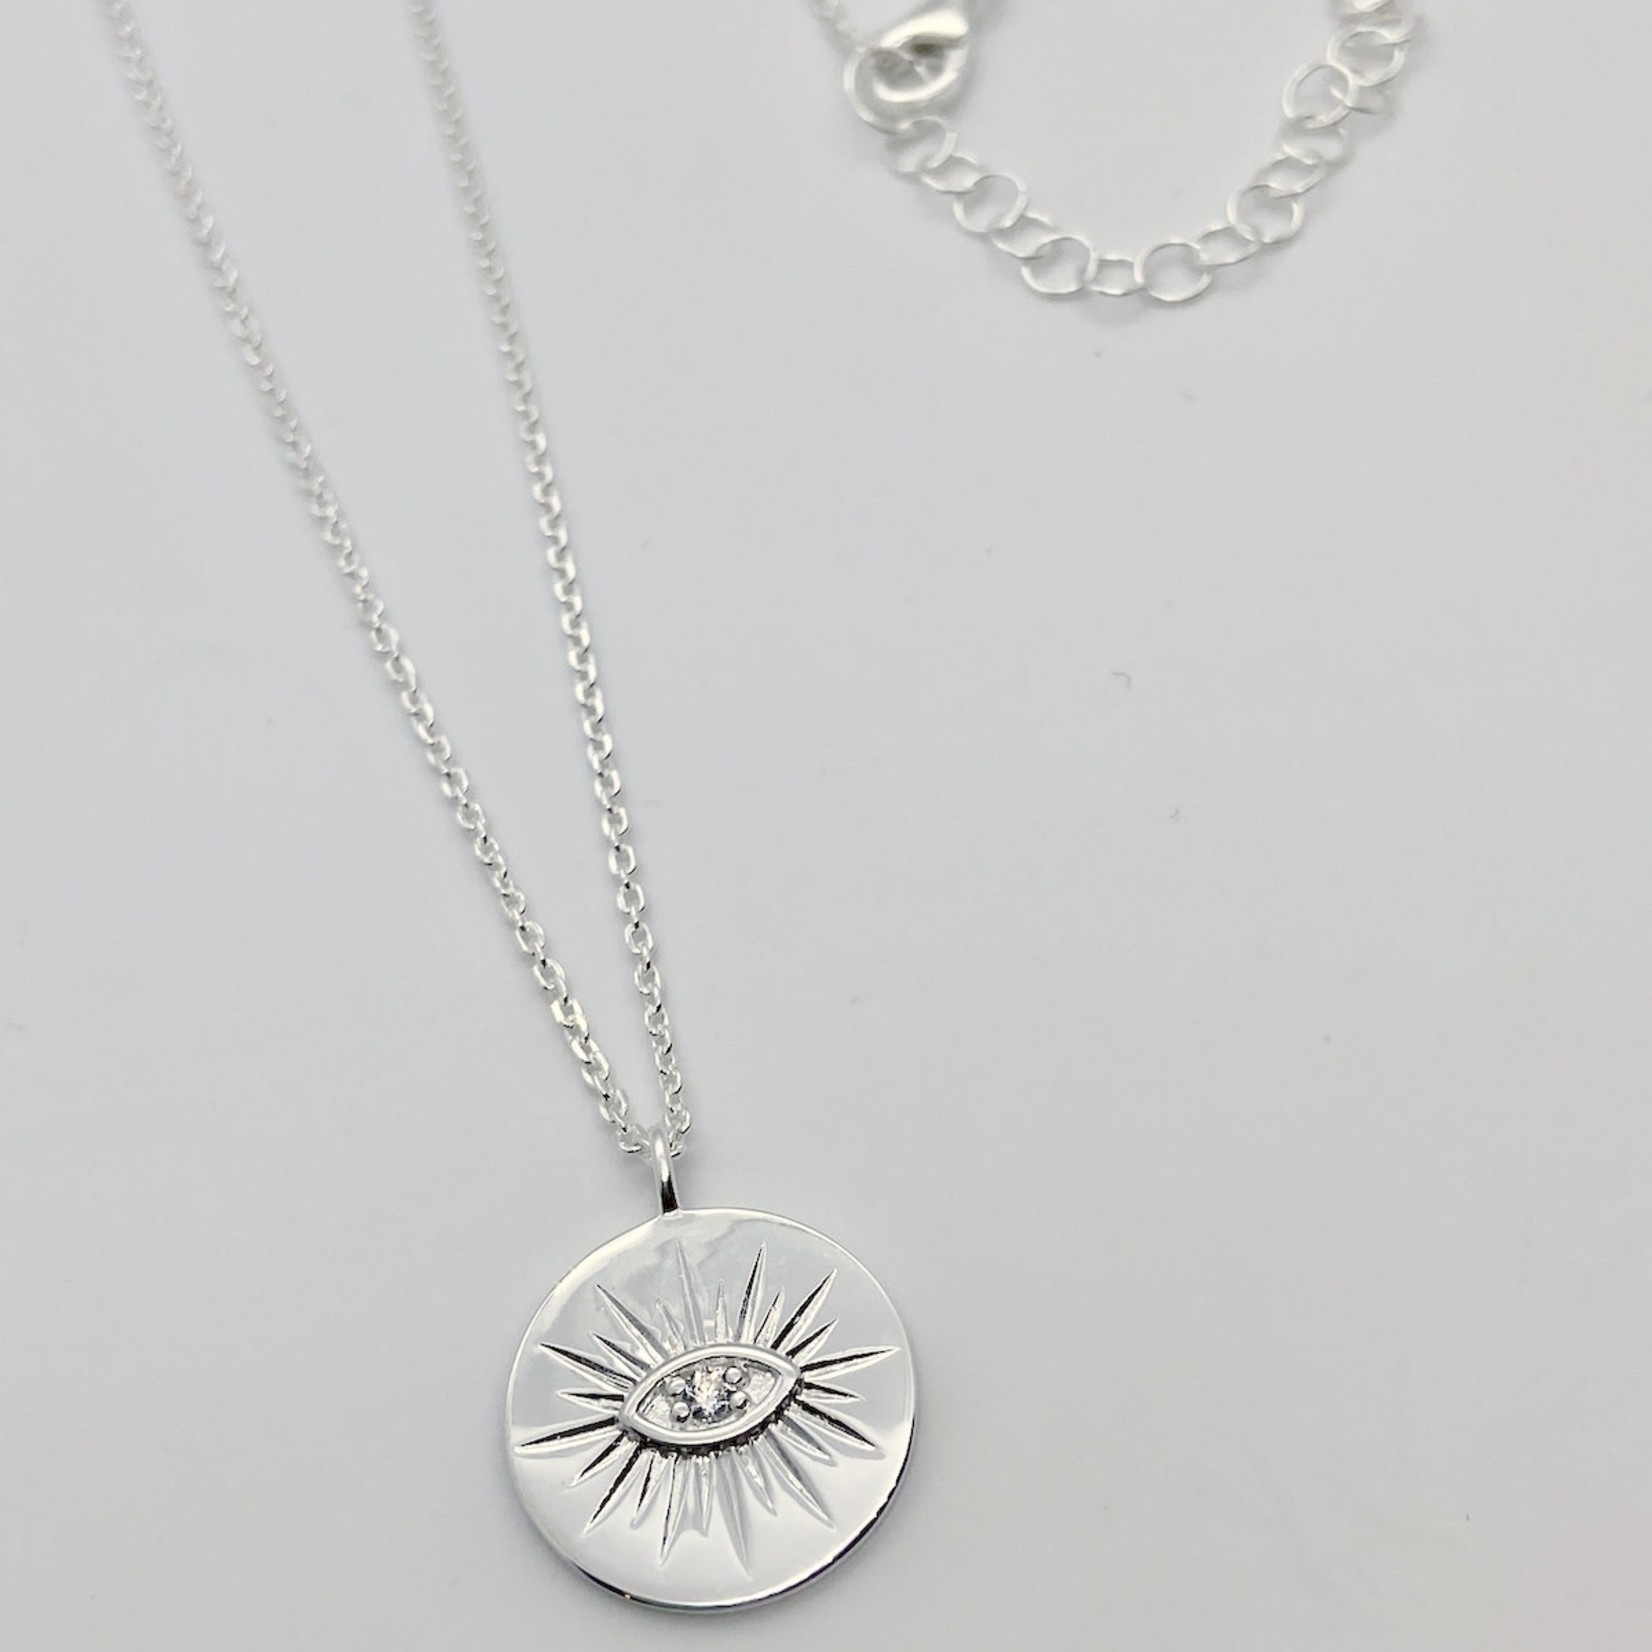 Silver Medallion with Eye Necklace